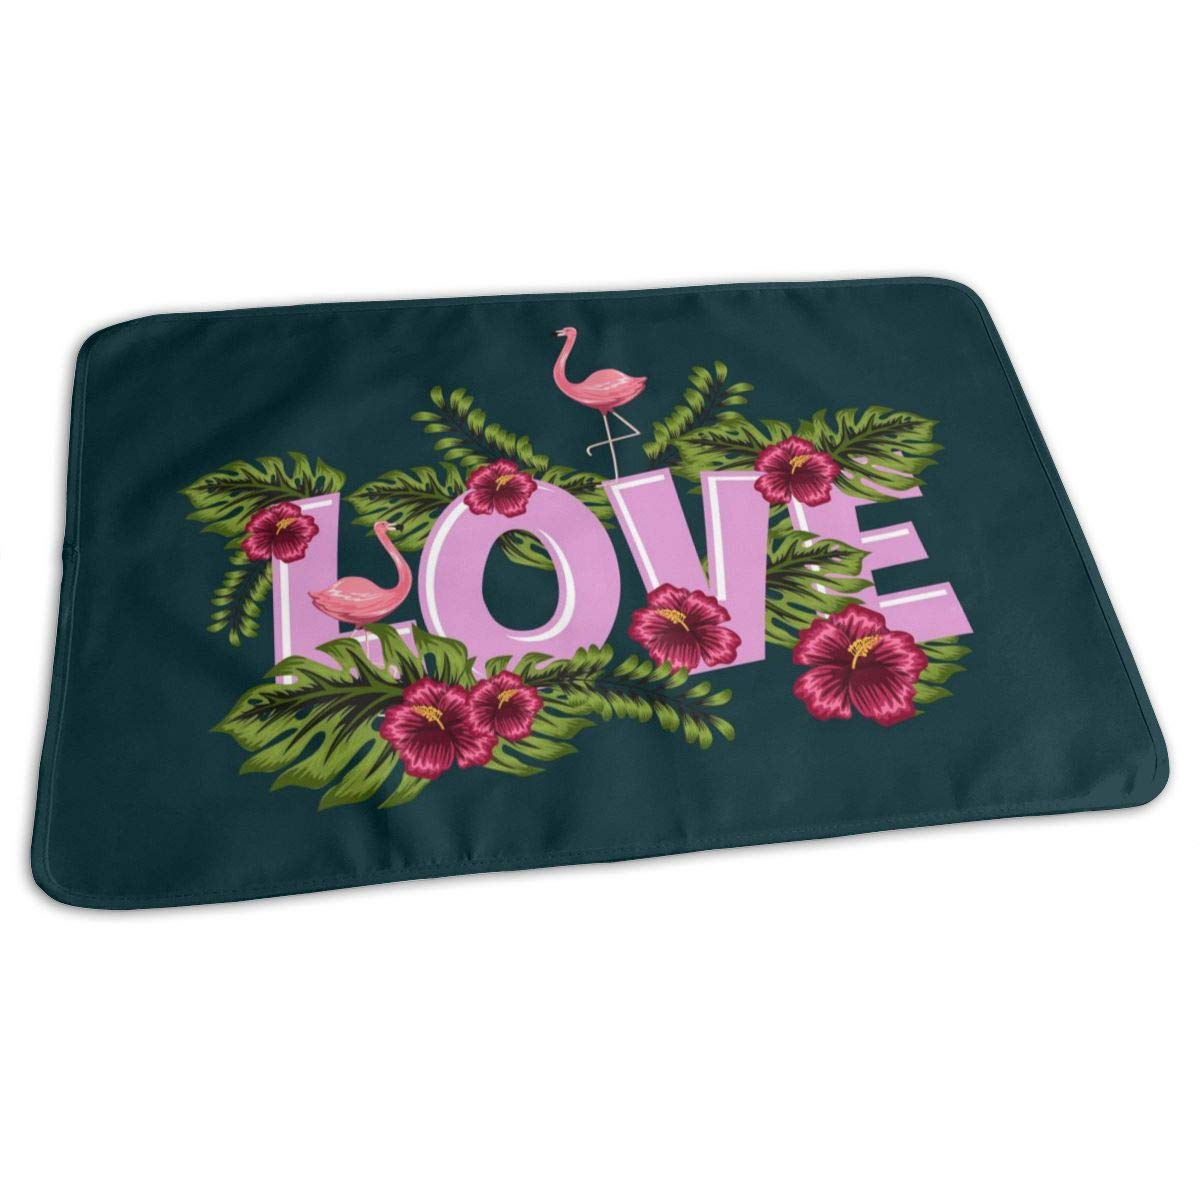 Osvbs Lovely Baby Reusable Waterproof Portable Greeting Card ''Love'' in Flower Characters Changing Pad Home Travel 27.5''x19.7'' by Osvbs